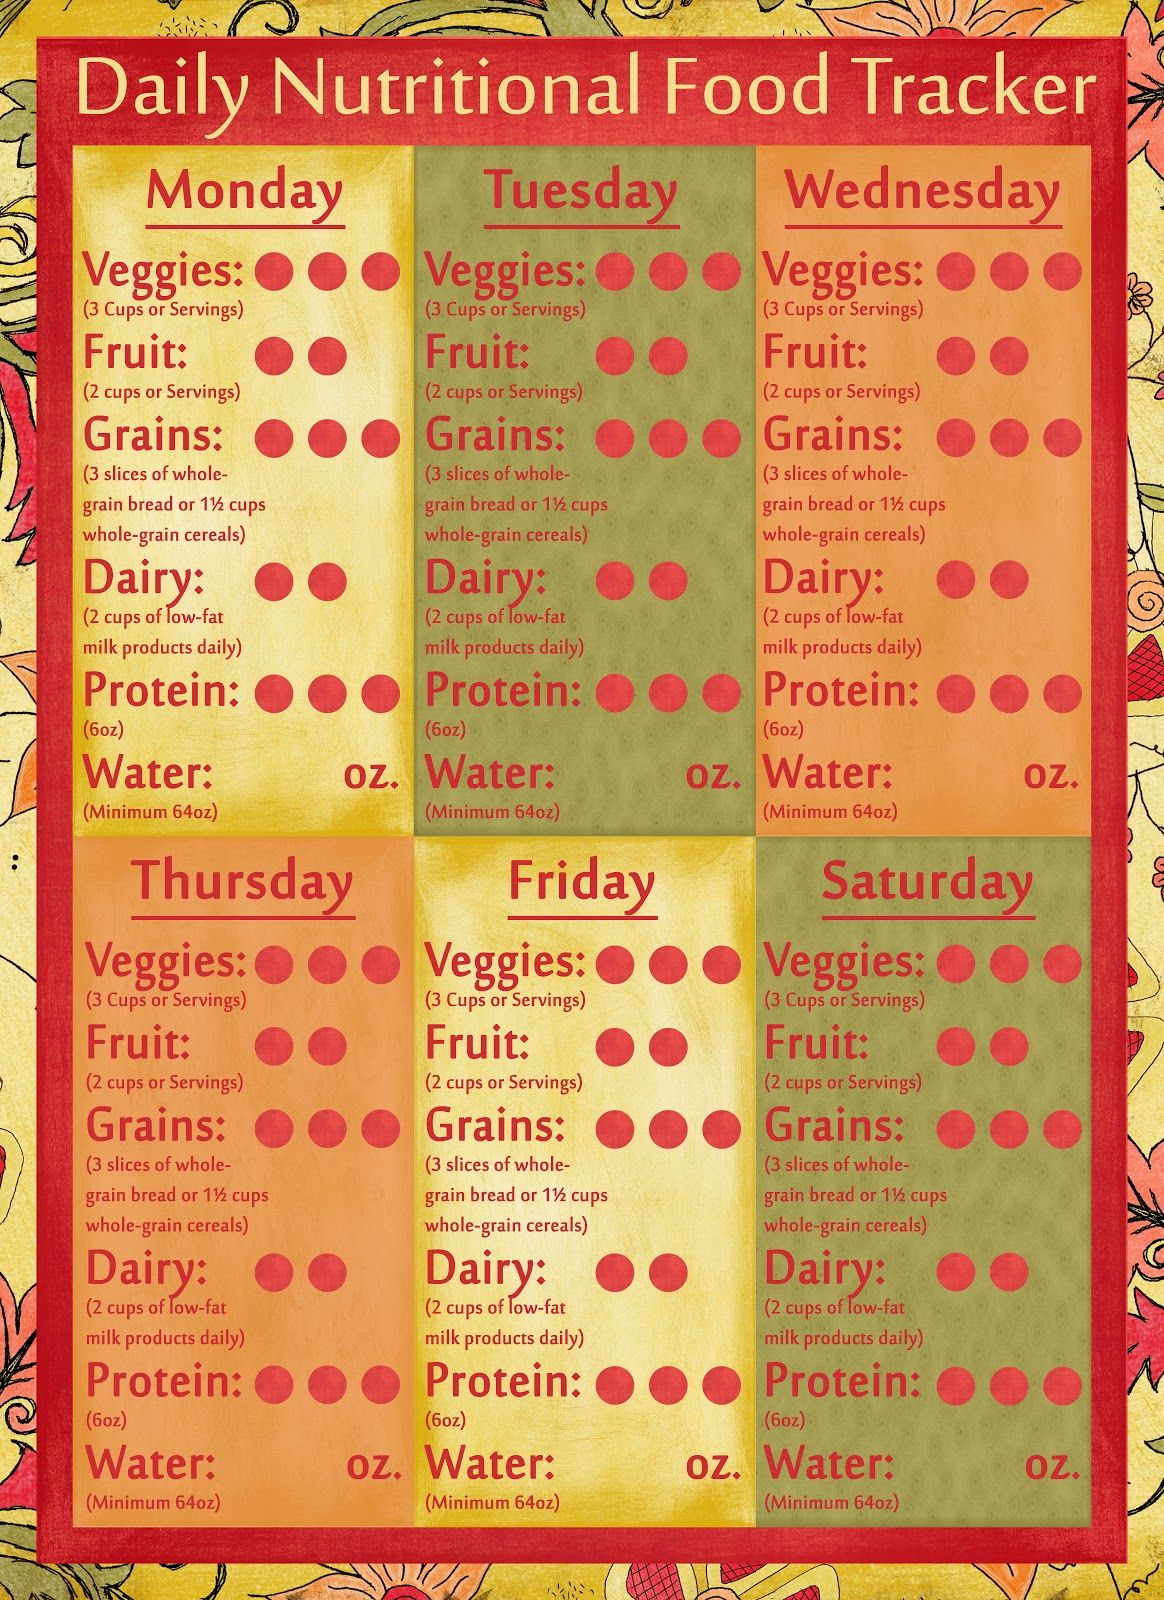 Daily Nutritional Food Tracker With Images